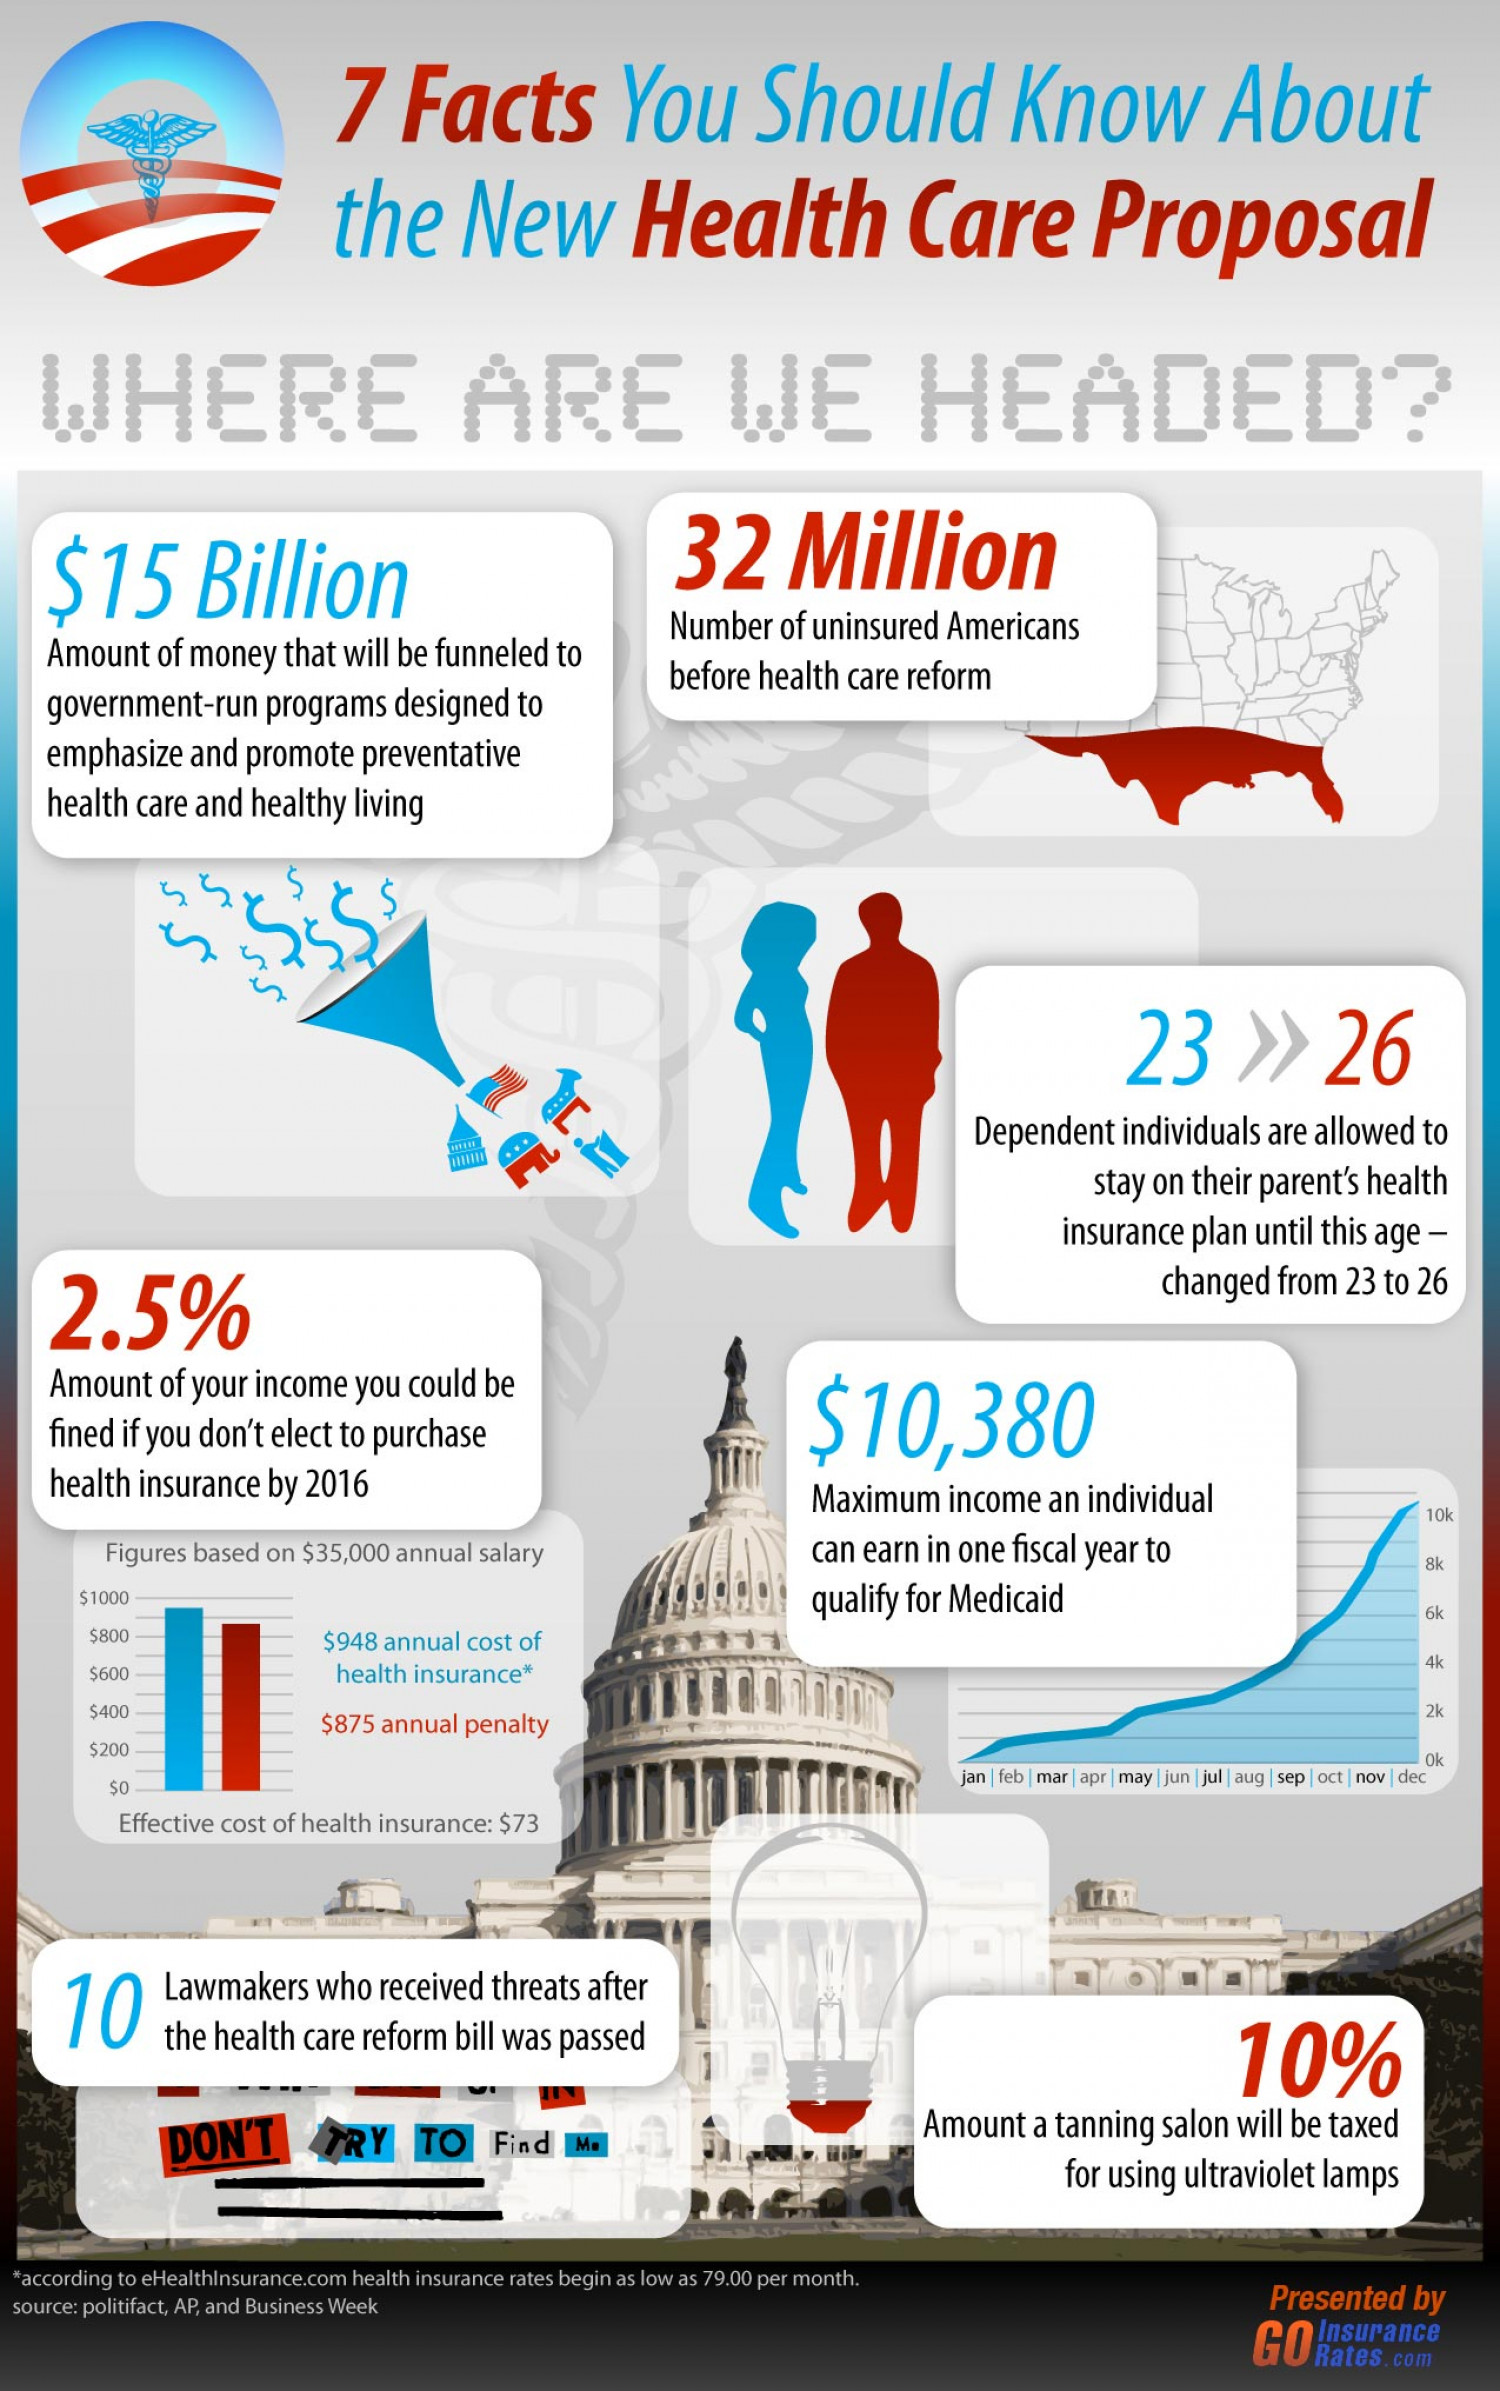 7 Facts You Should Know About the New Health Care Proposal Infographic